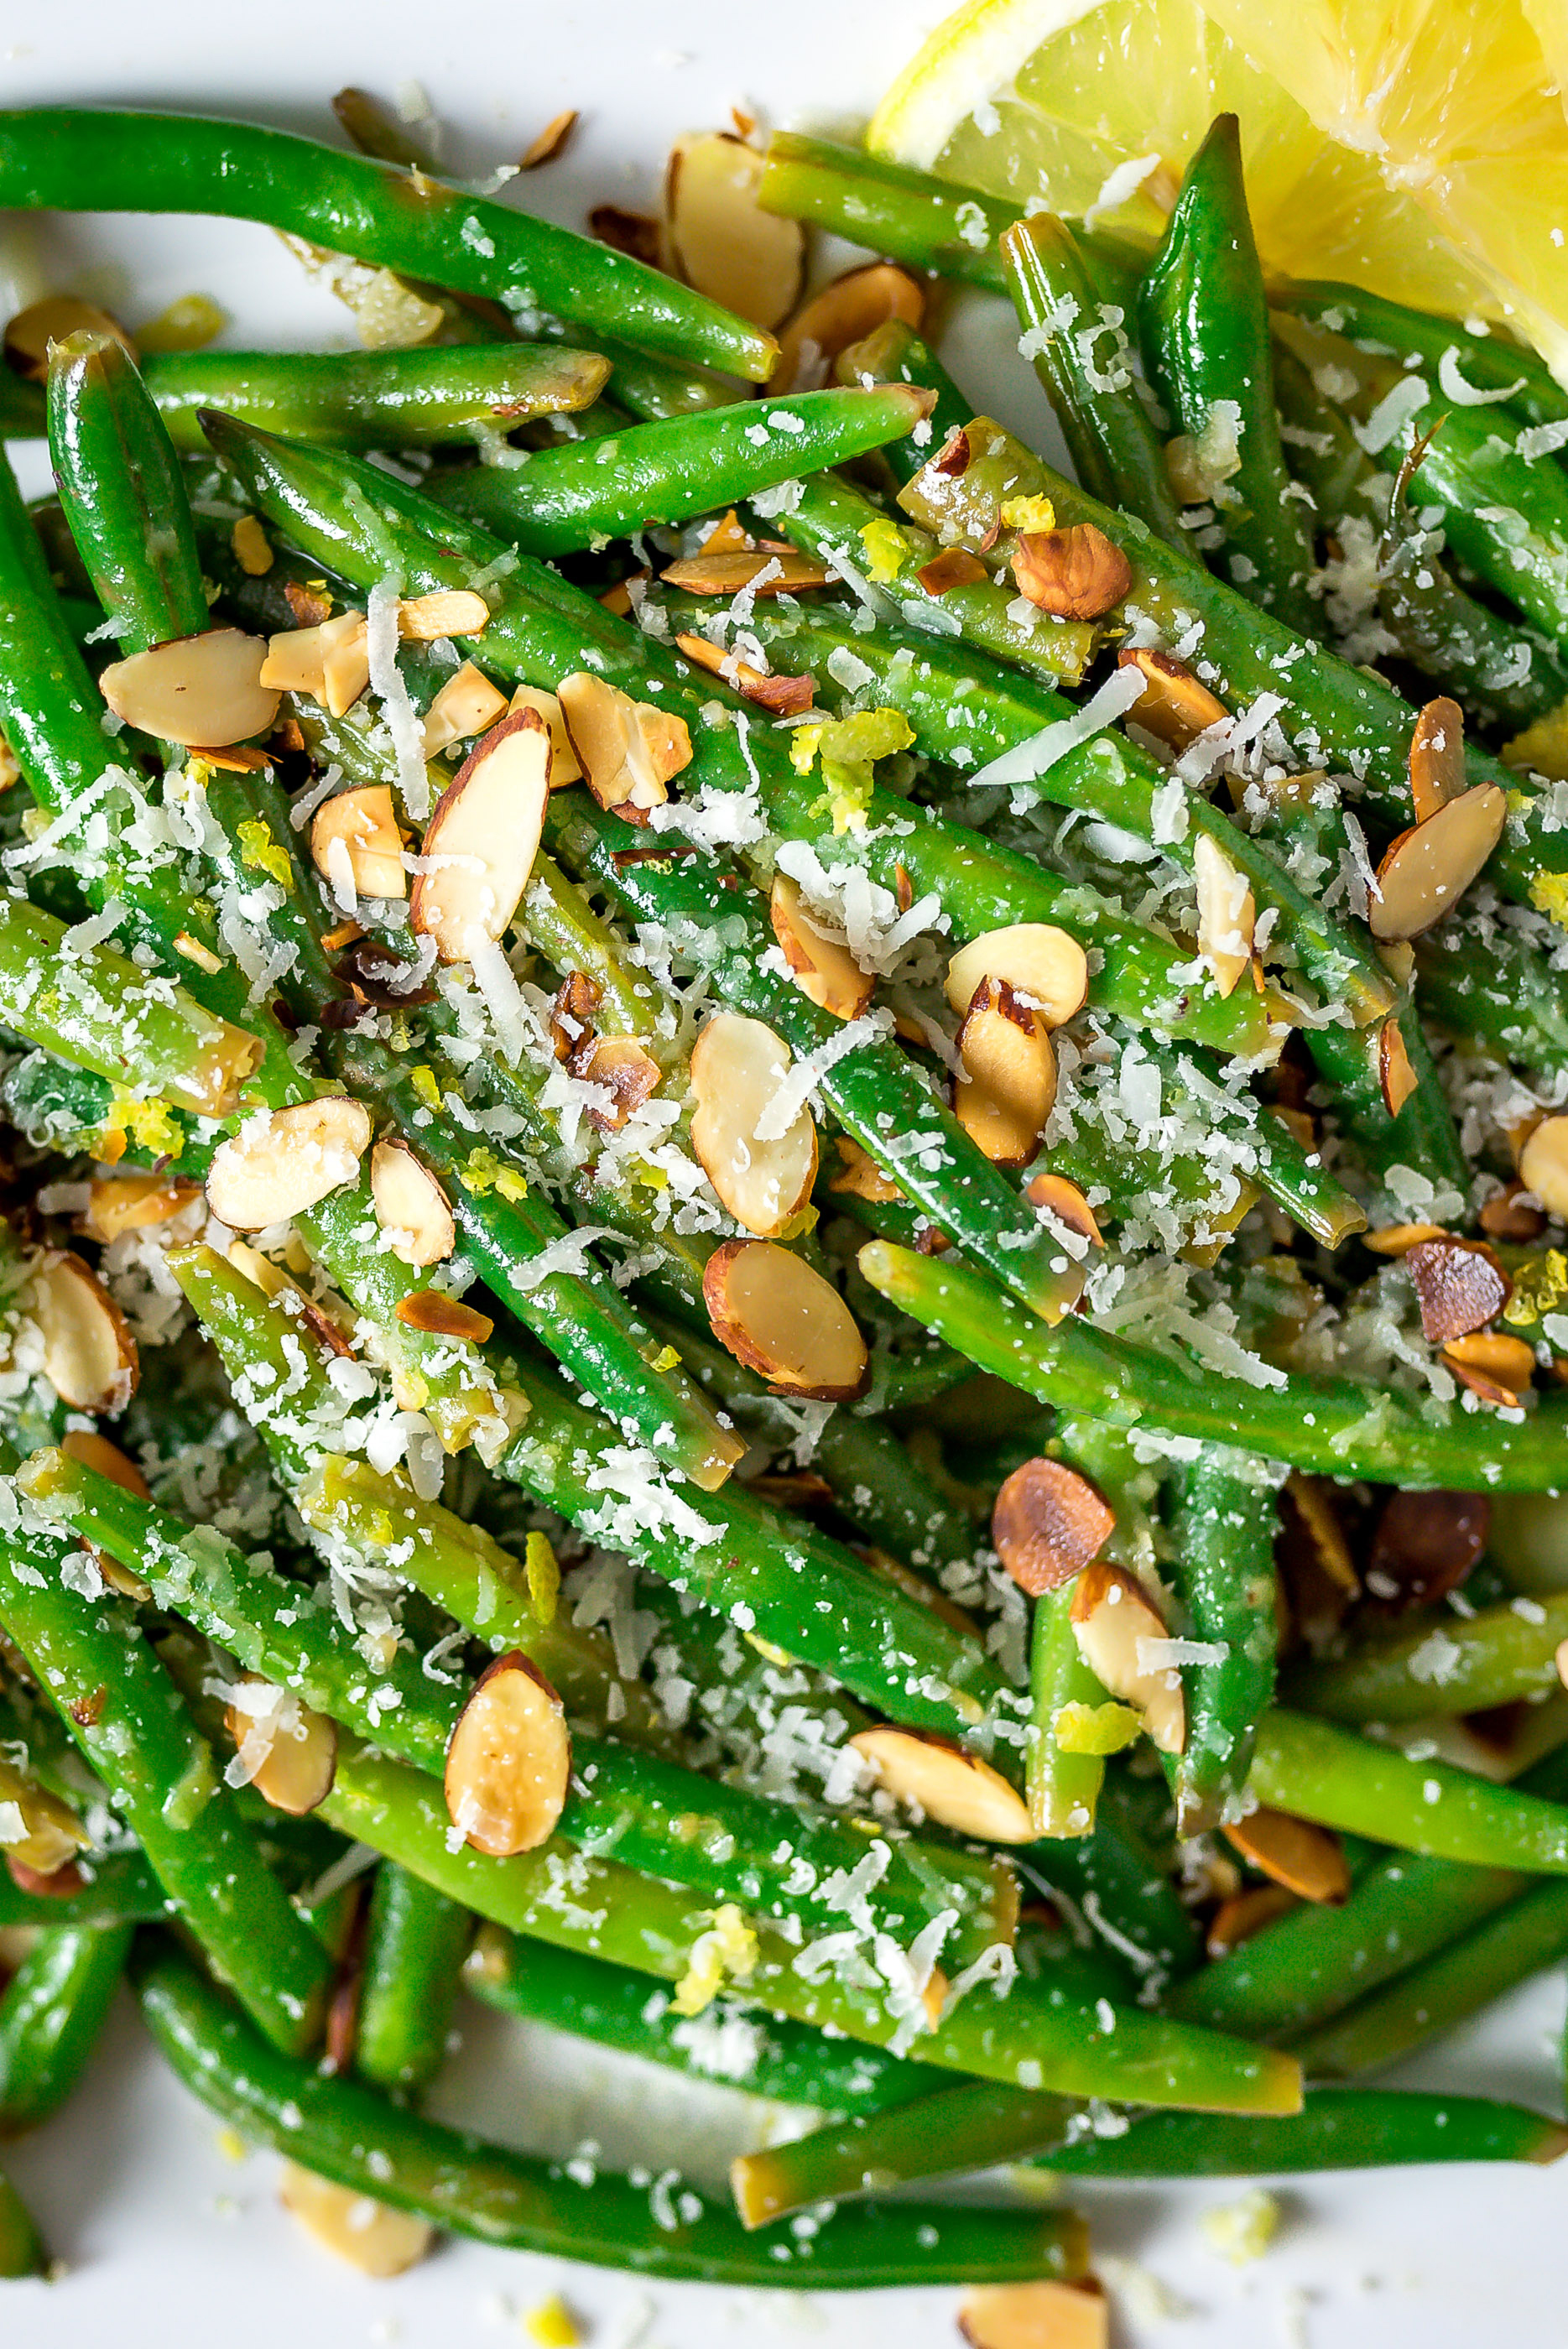 A close-up picture of Browned Butter Lemon-Garlic Green Beans.